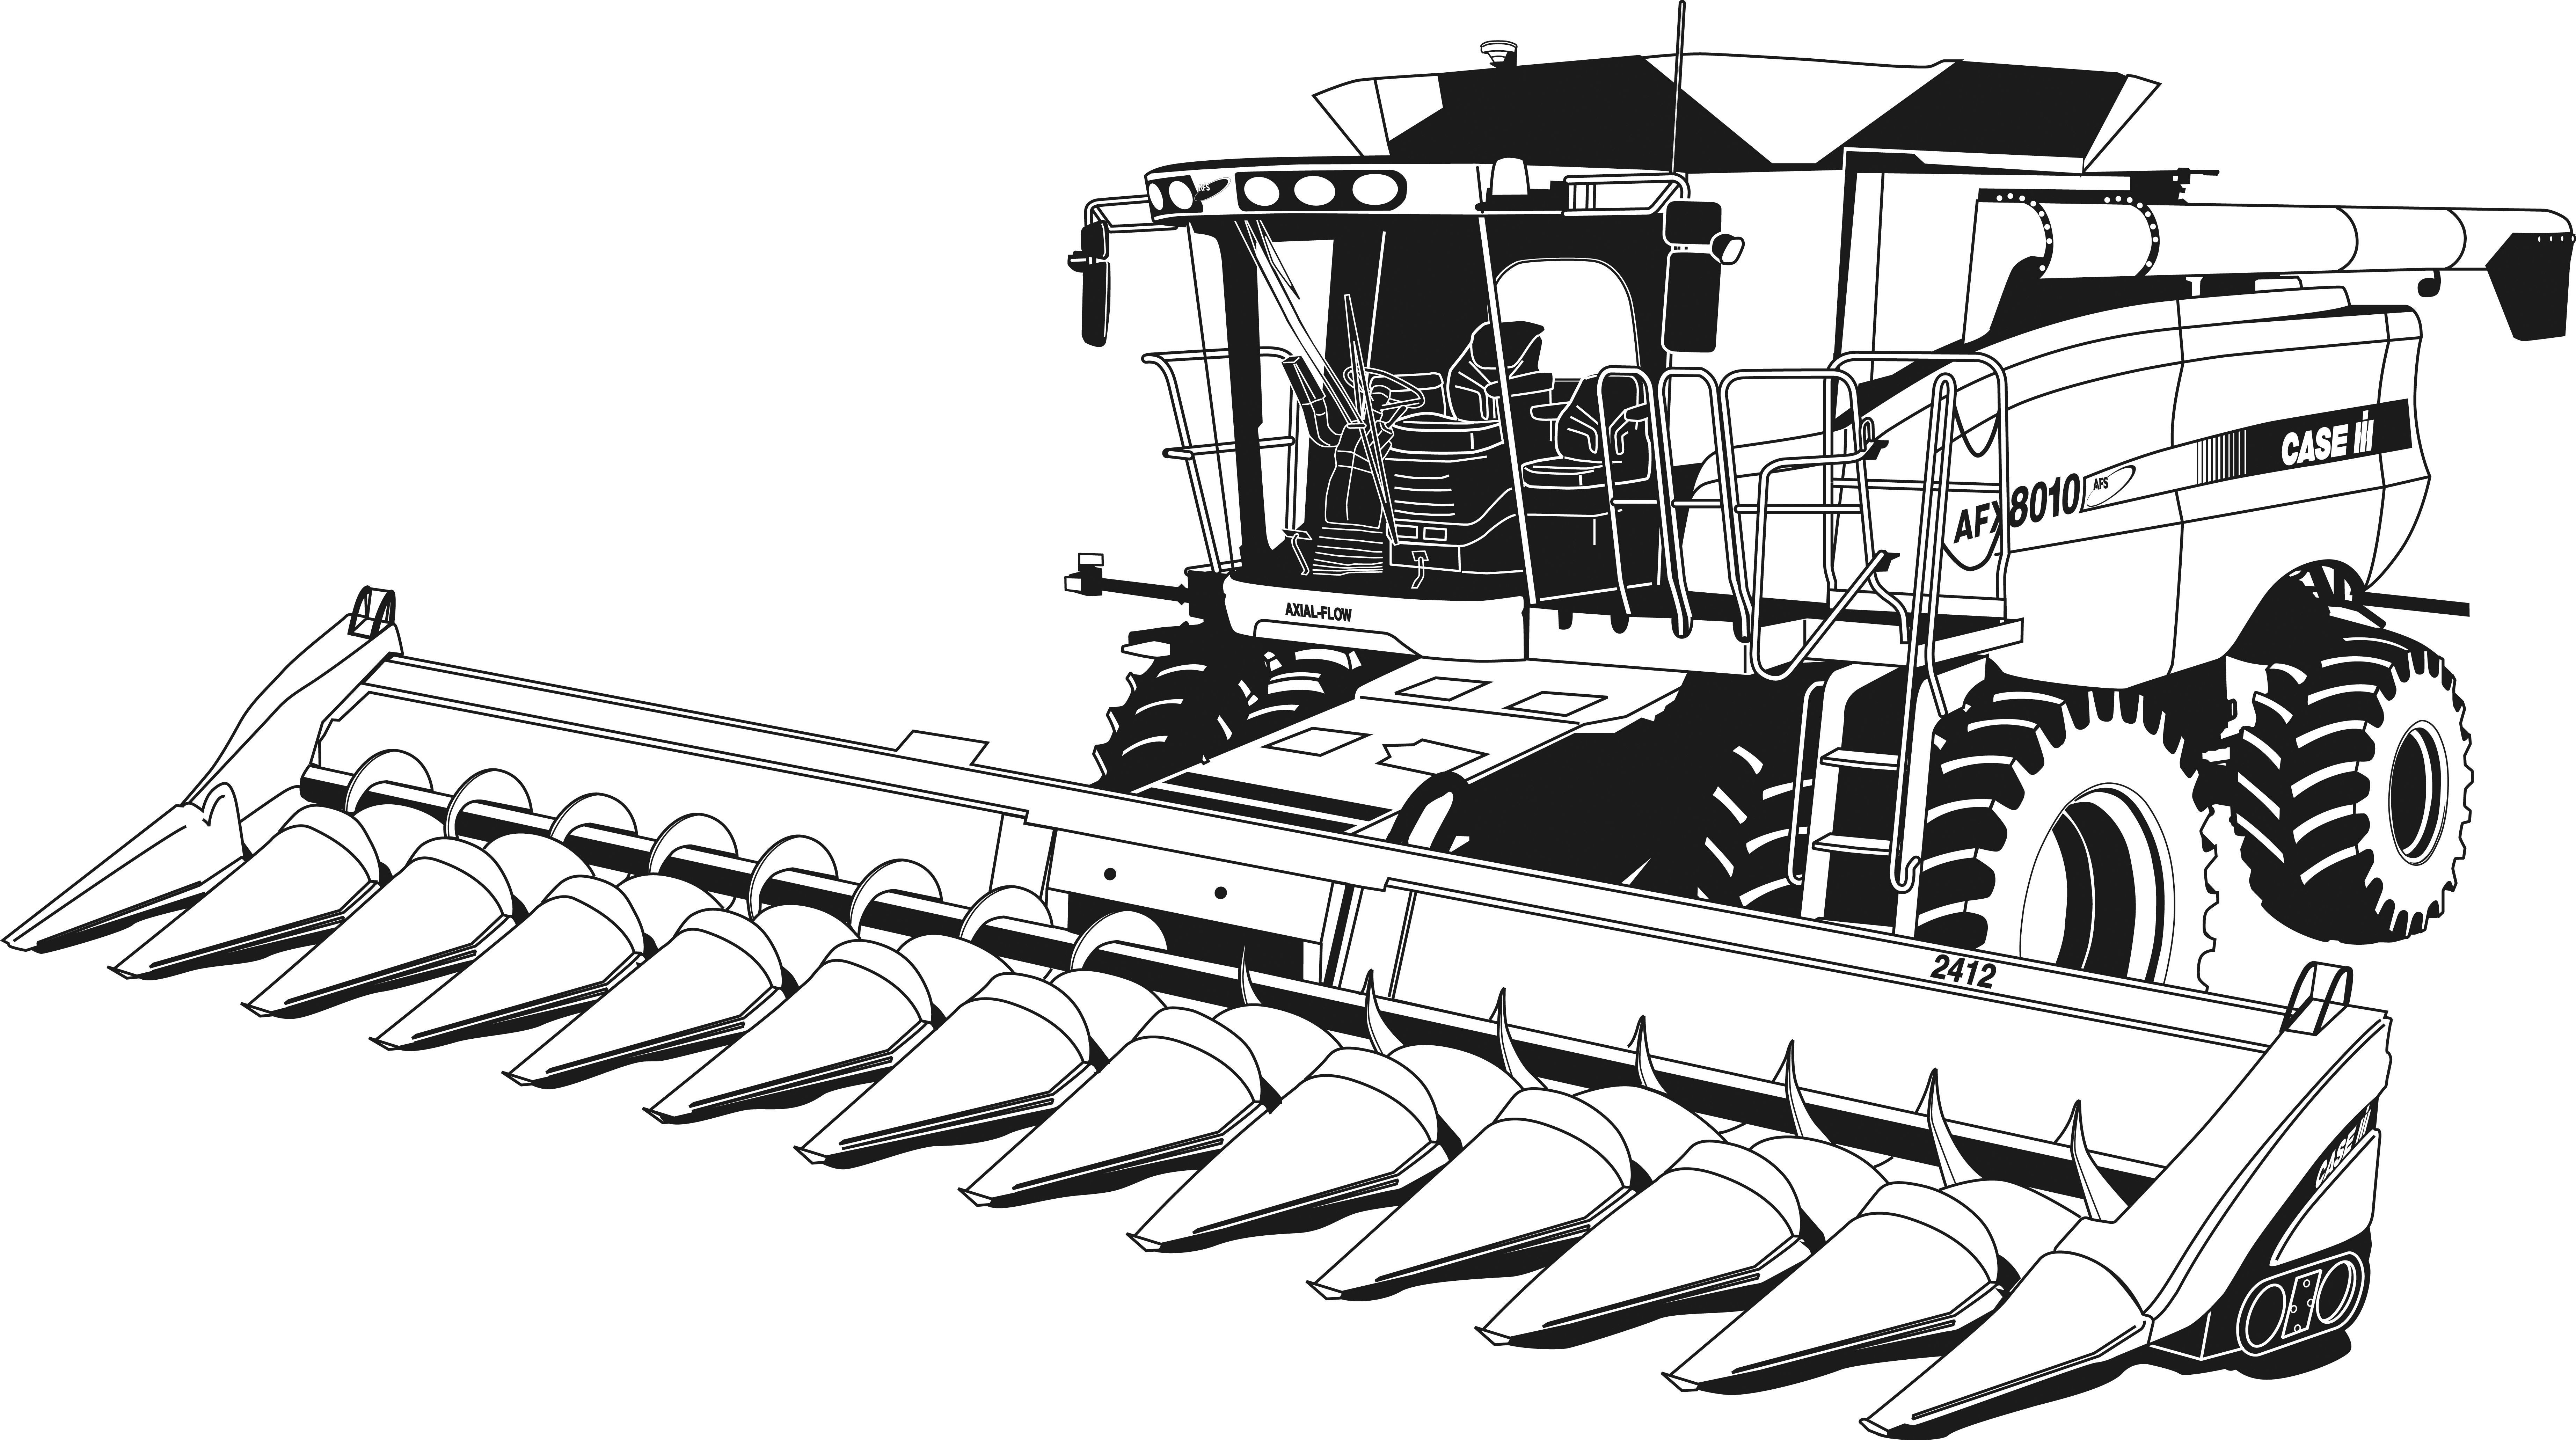 tractor coloring page tractor coloring pages at getdrawings free download tractor coloring page